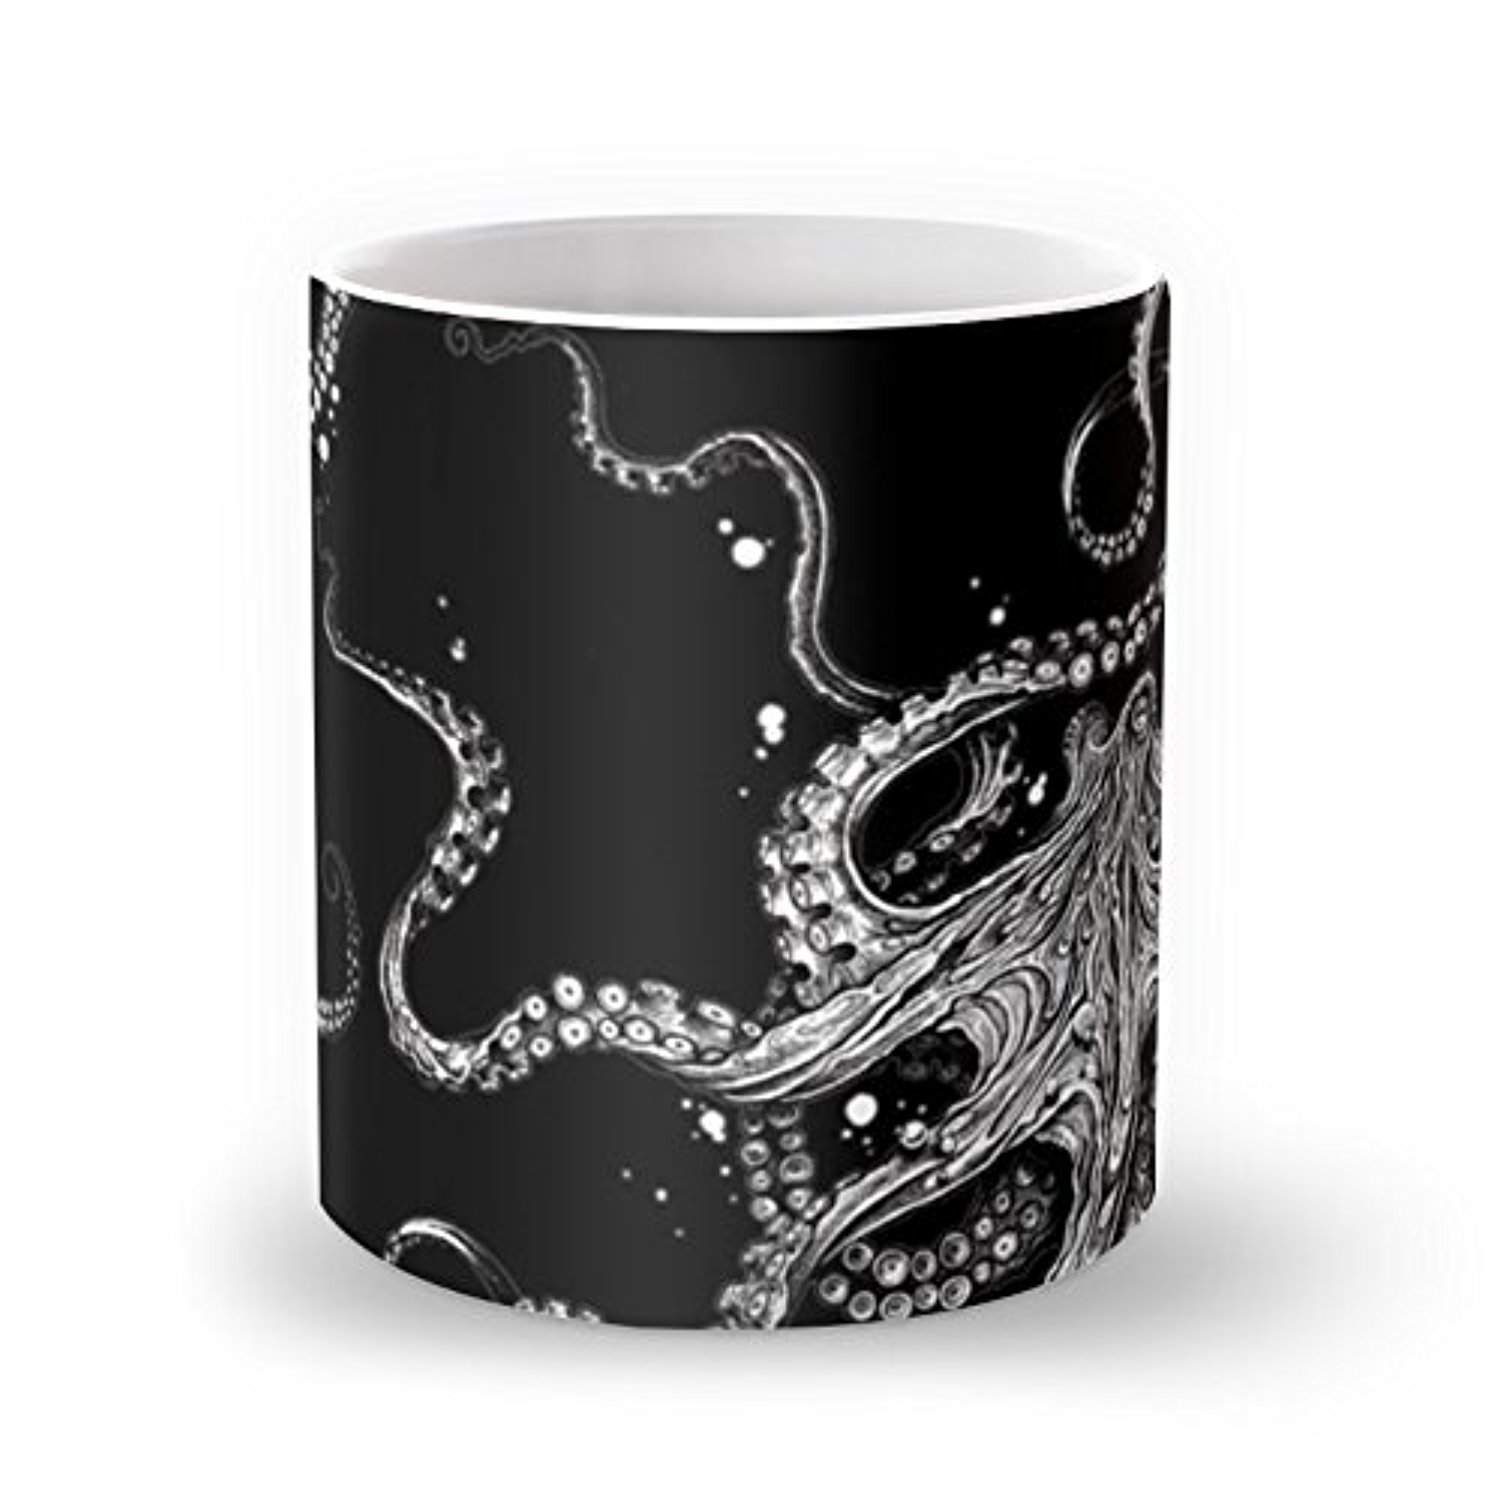 Society6 Octopus (black) Mug 11 oz